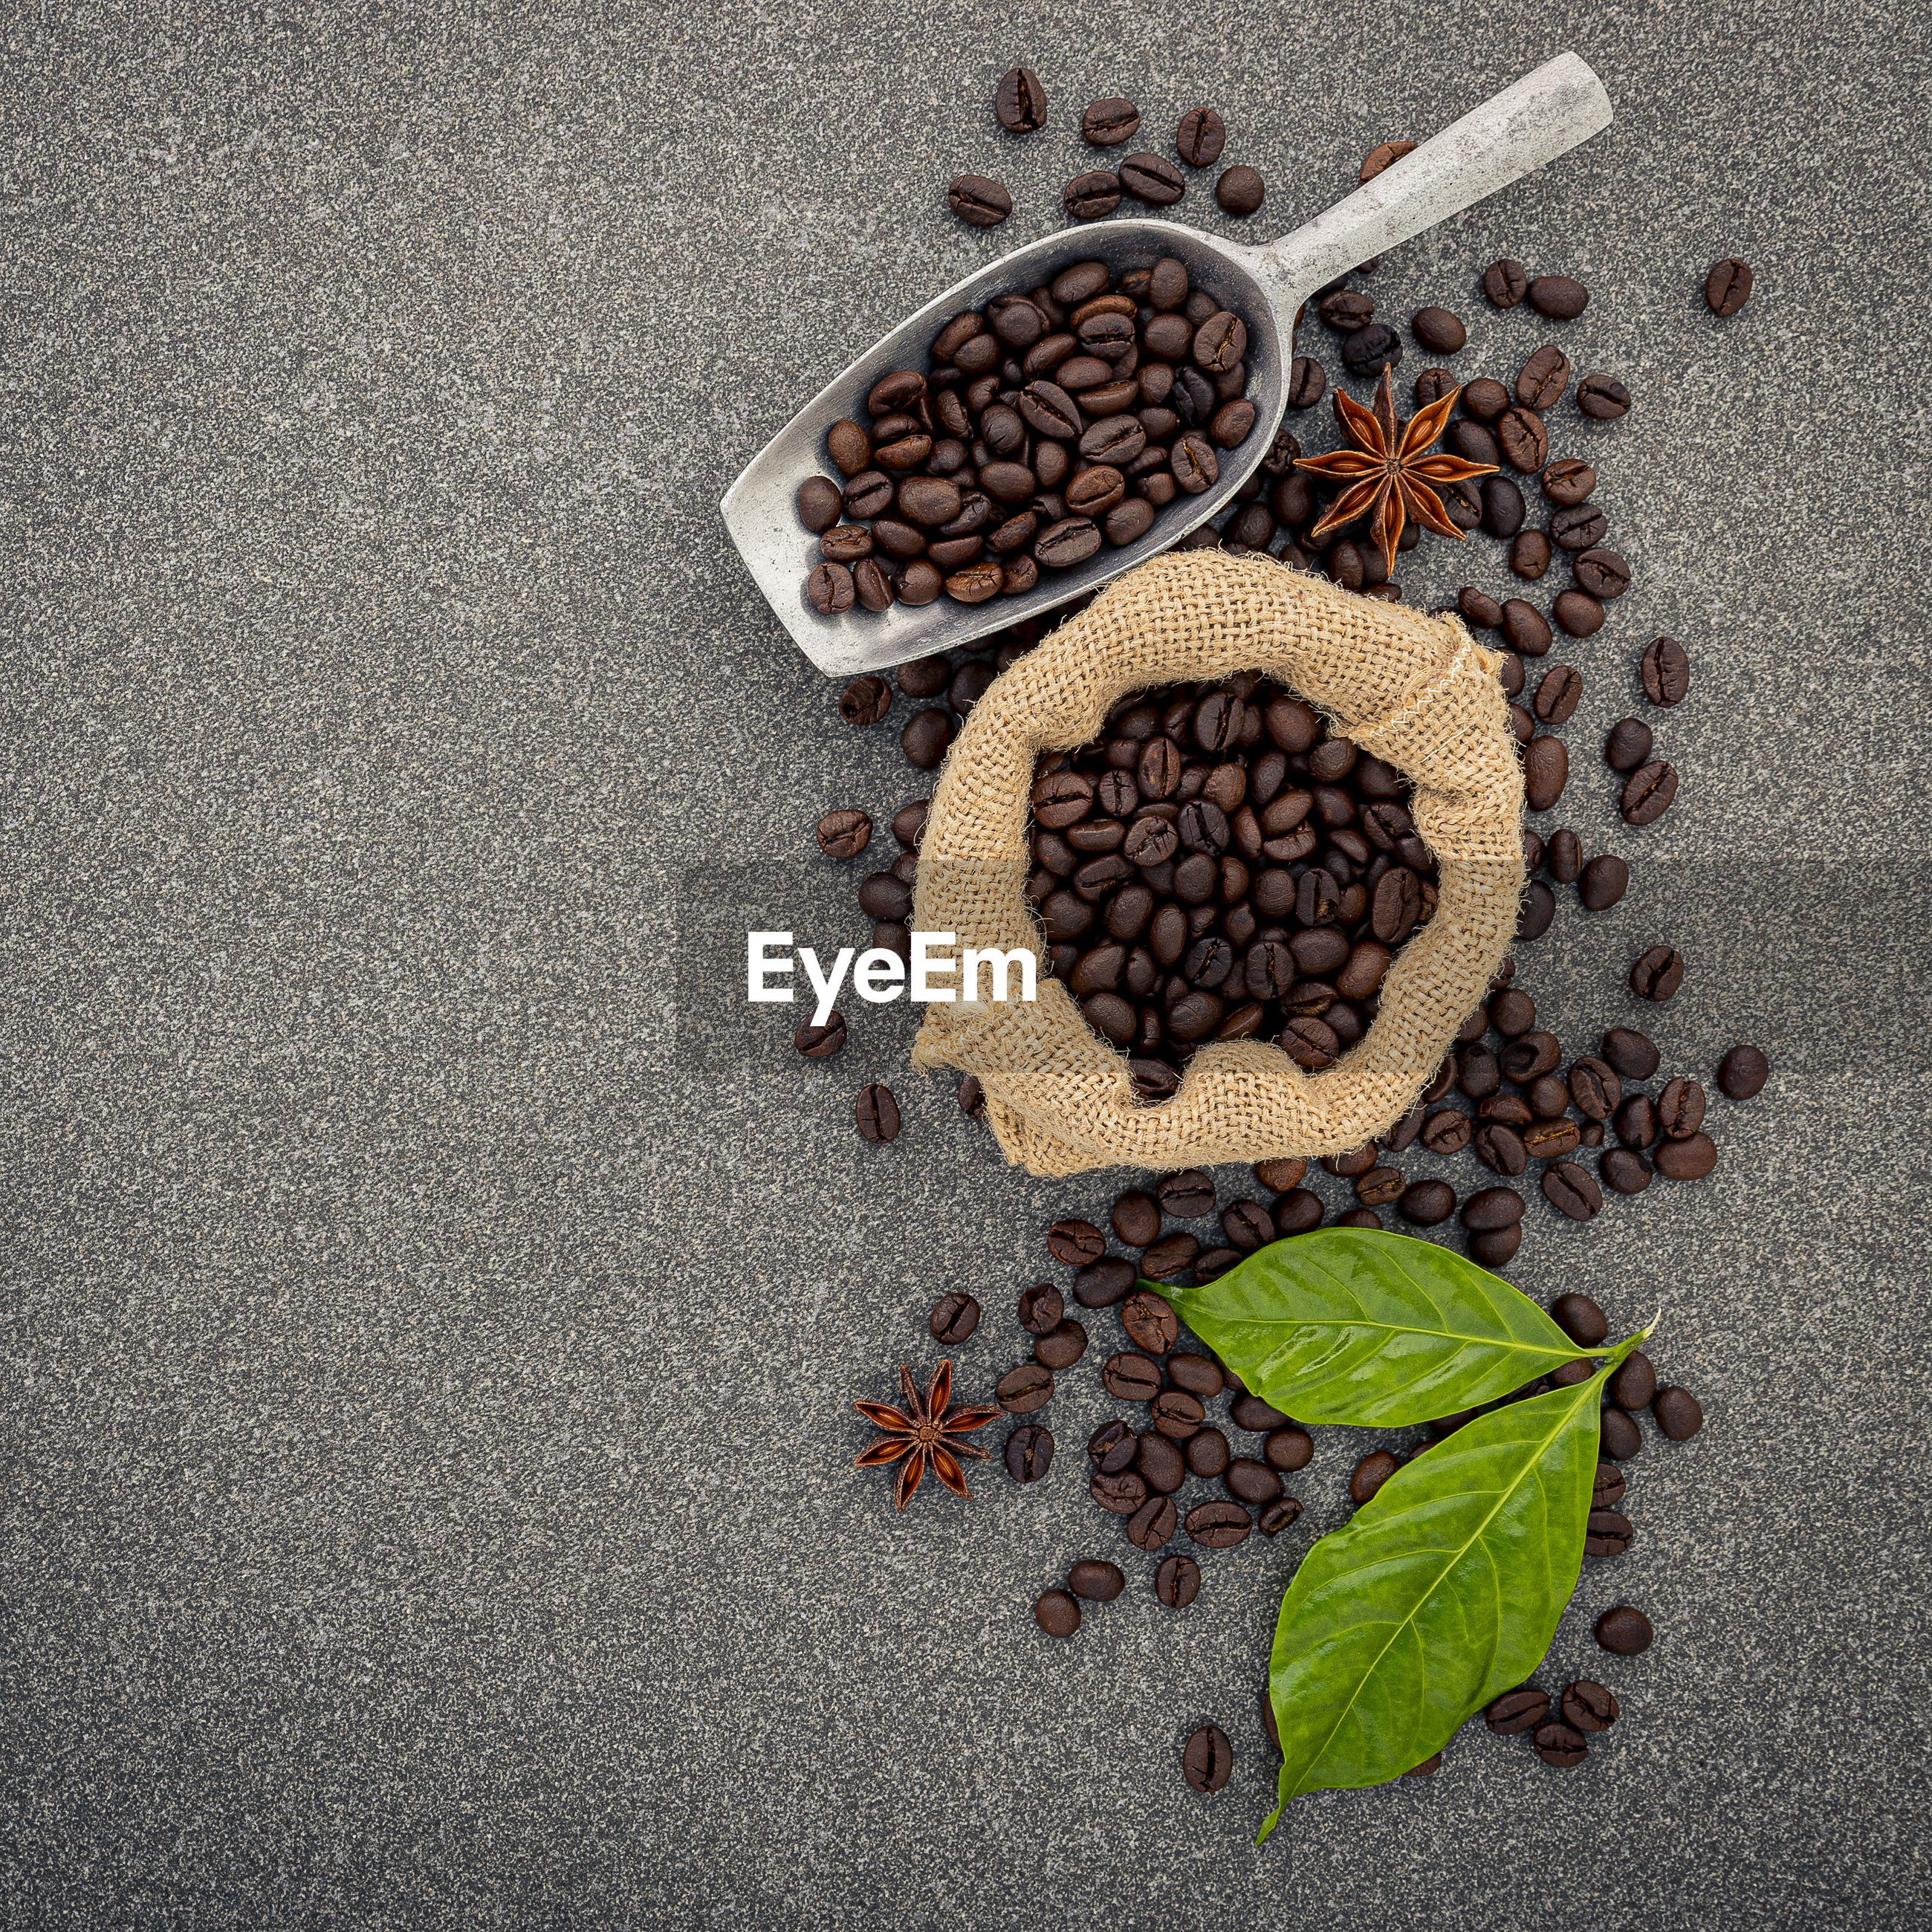 HIGH ANGLE VIEW OF ROASTED COFFEE BEANS IN GLASS